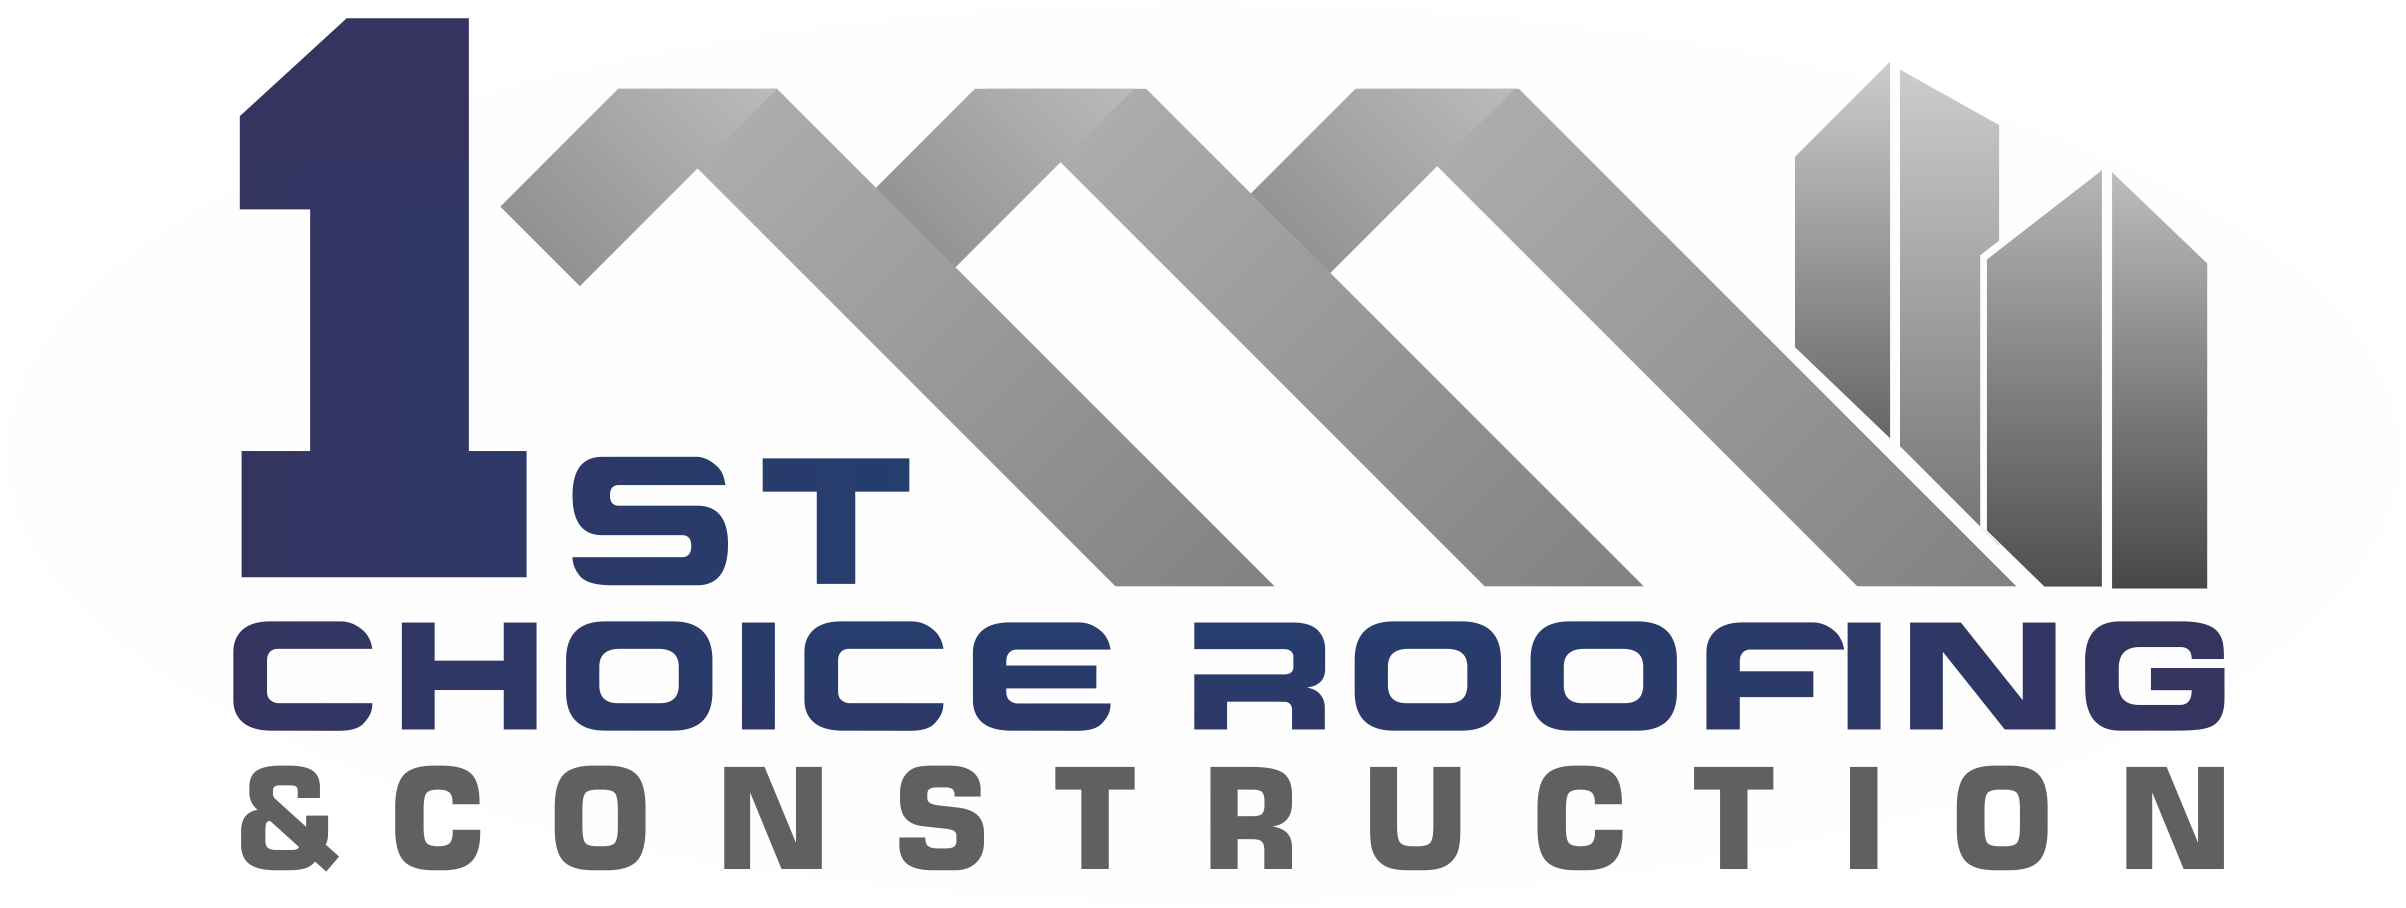 First Choice Roofing Charlotte